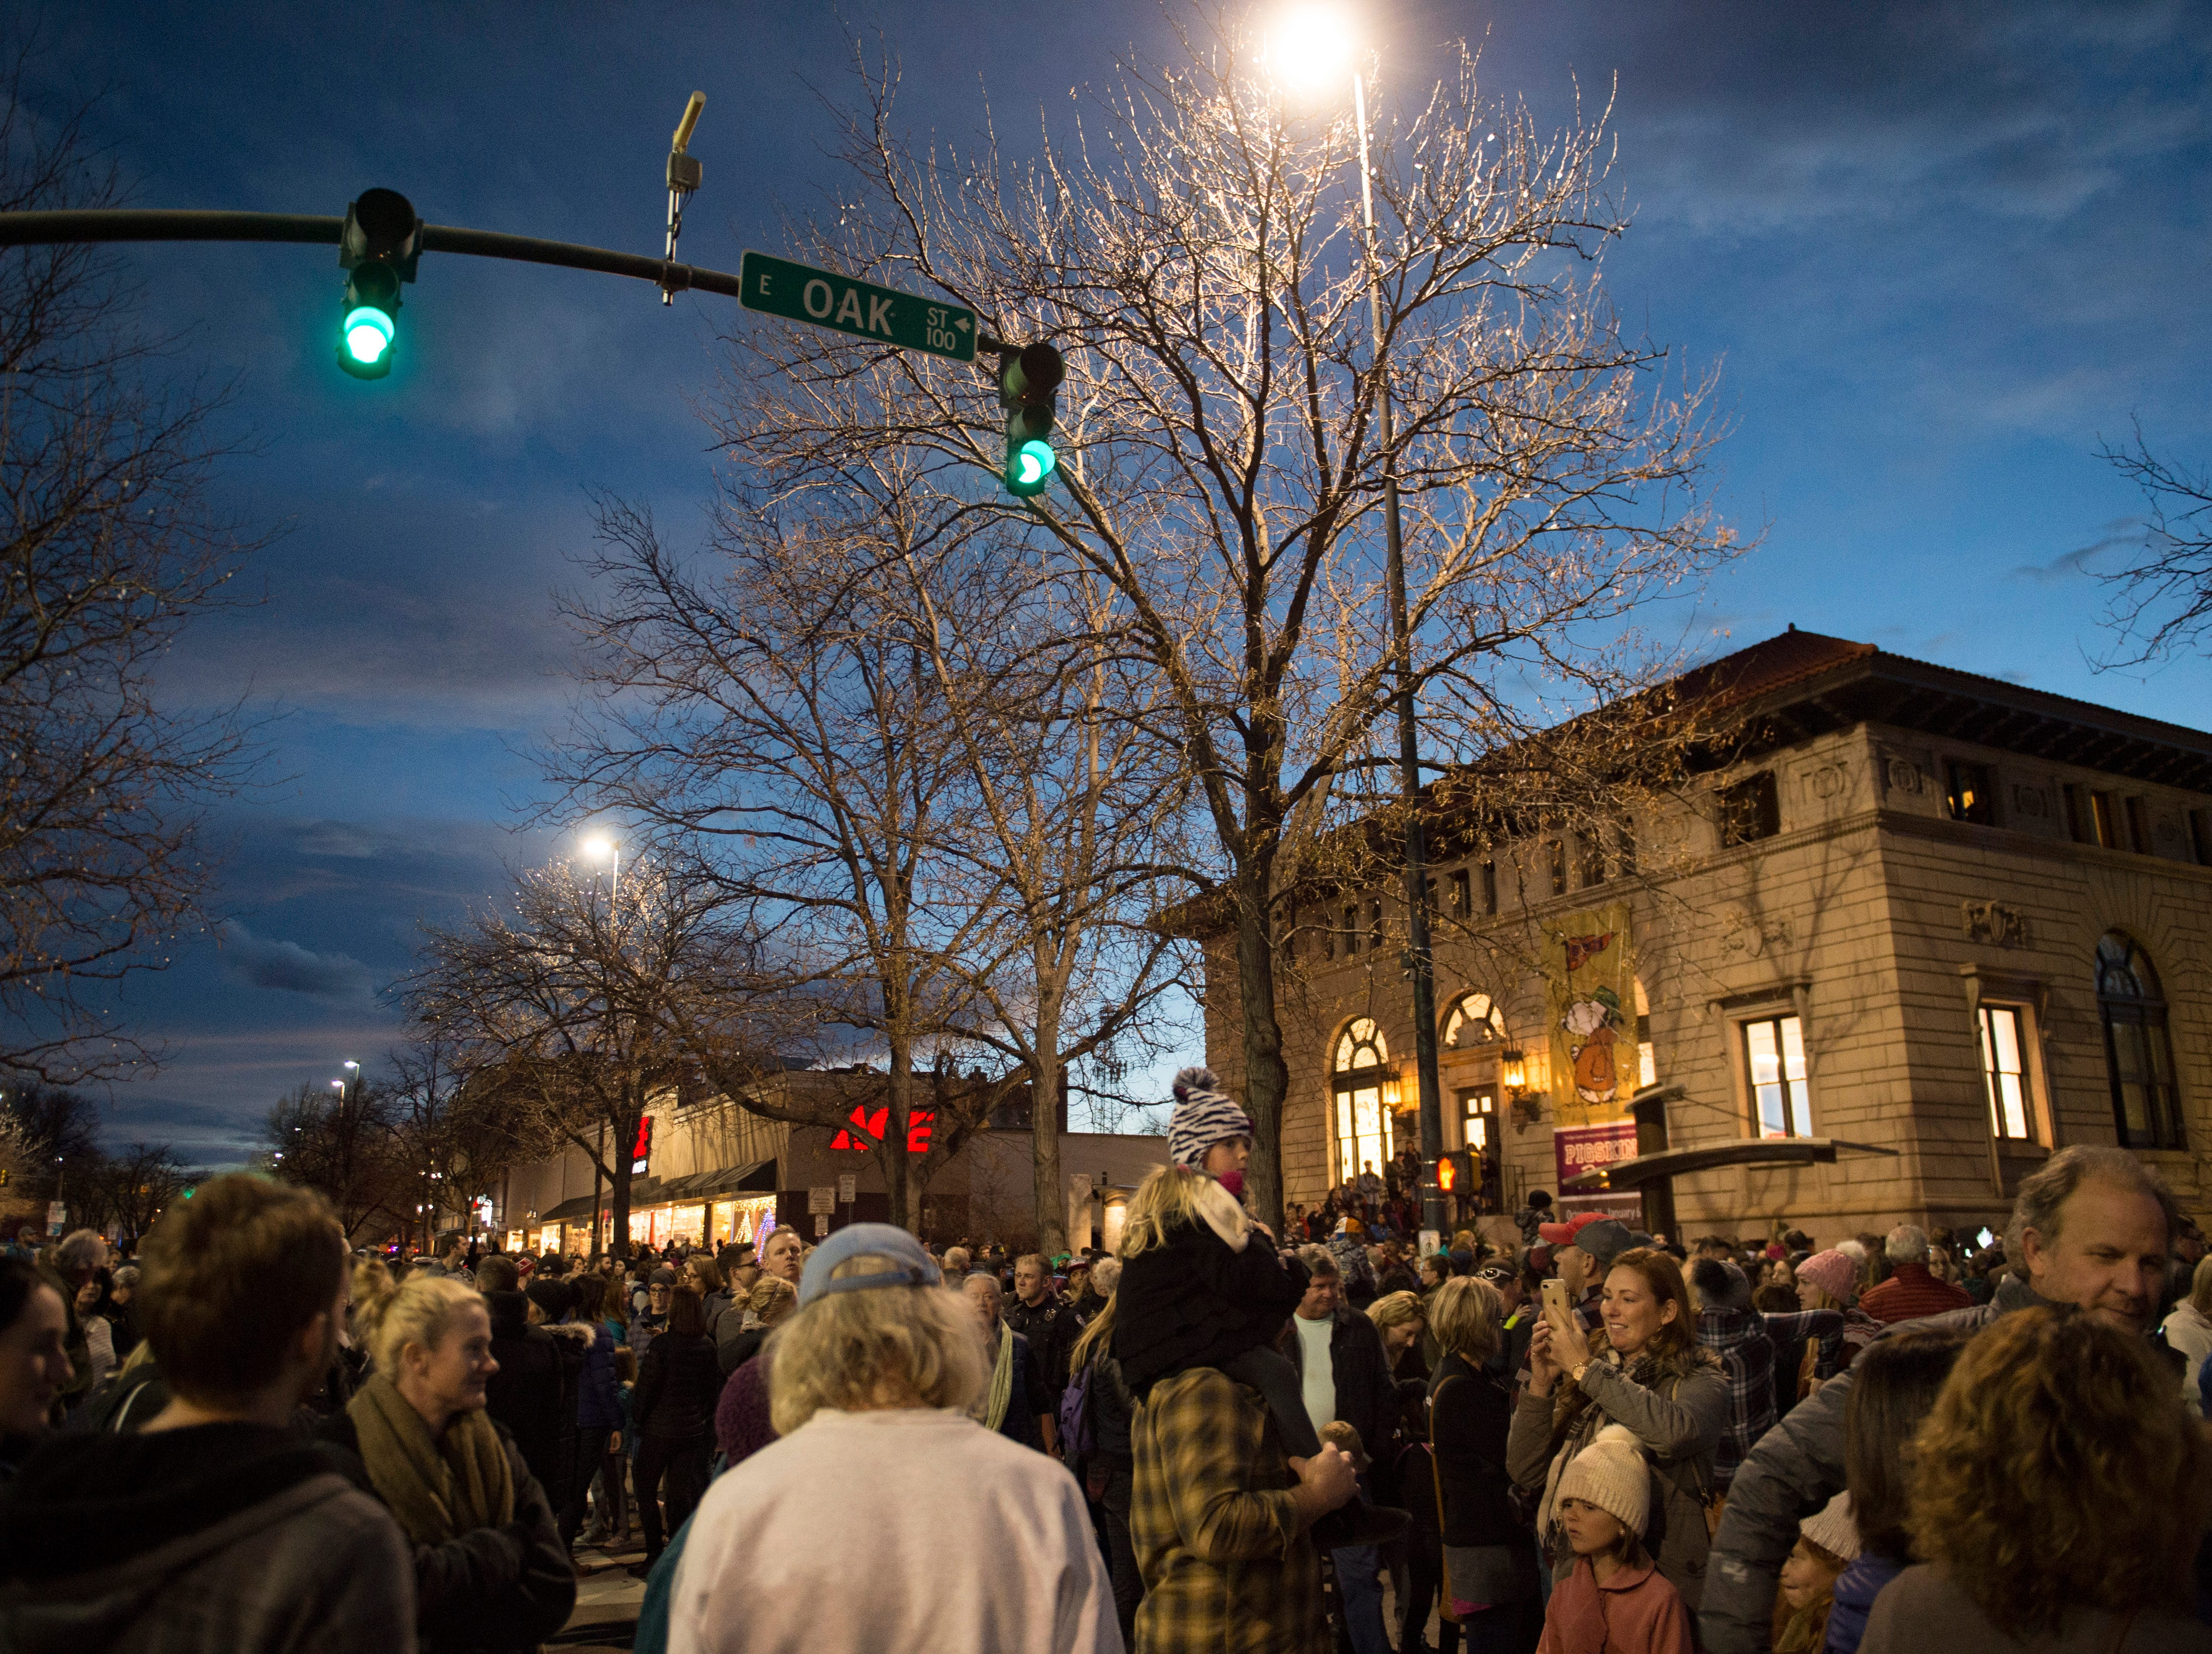 People walk down College Avenue before the holiday lights are turned on in Old Town on Friday, November 2, 2018. College Avenue was closed for public safety during the lighting celebration.